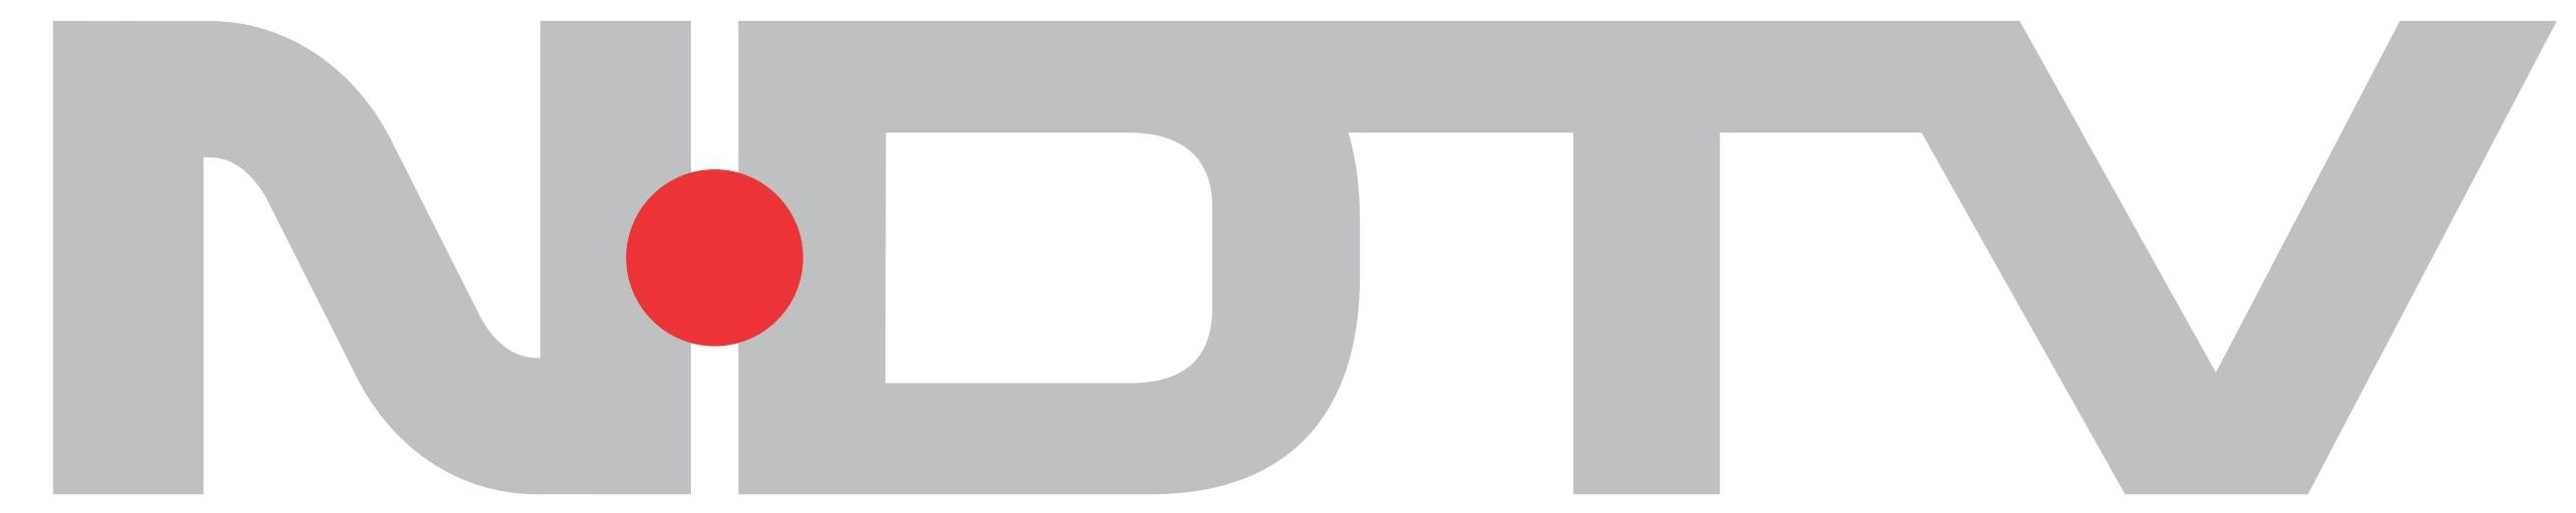 NDTV-New-Delhi-Television-Limited-Logo